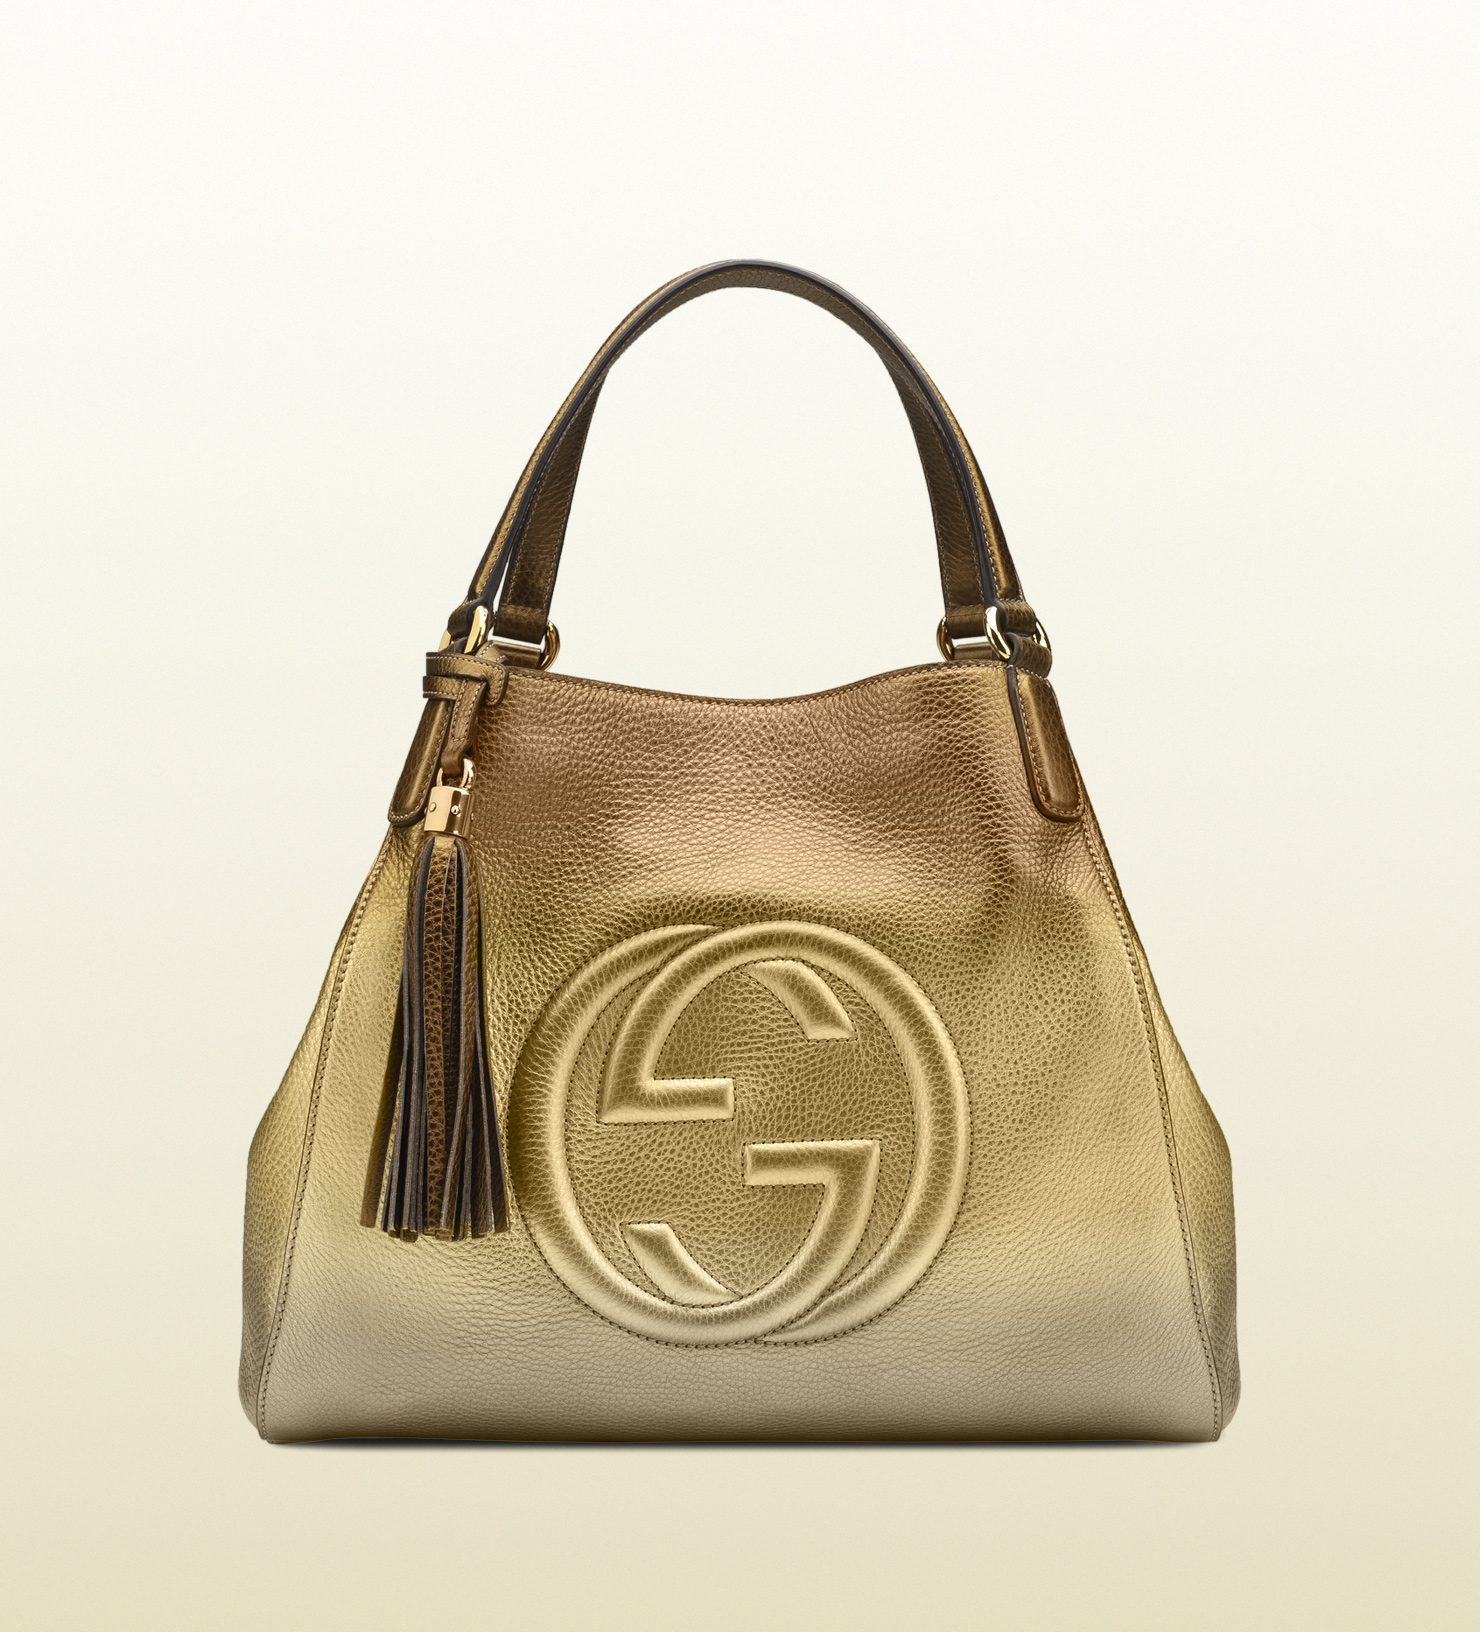 lyst gucci soho shaded leather shoulder bag in metallic